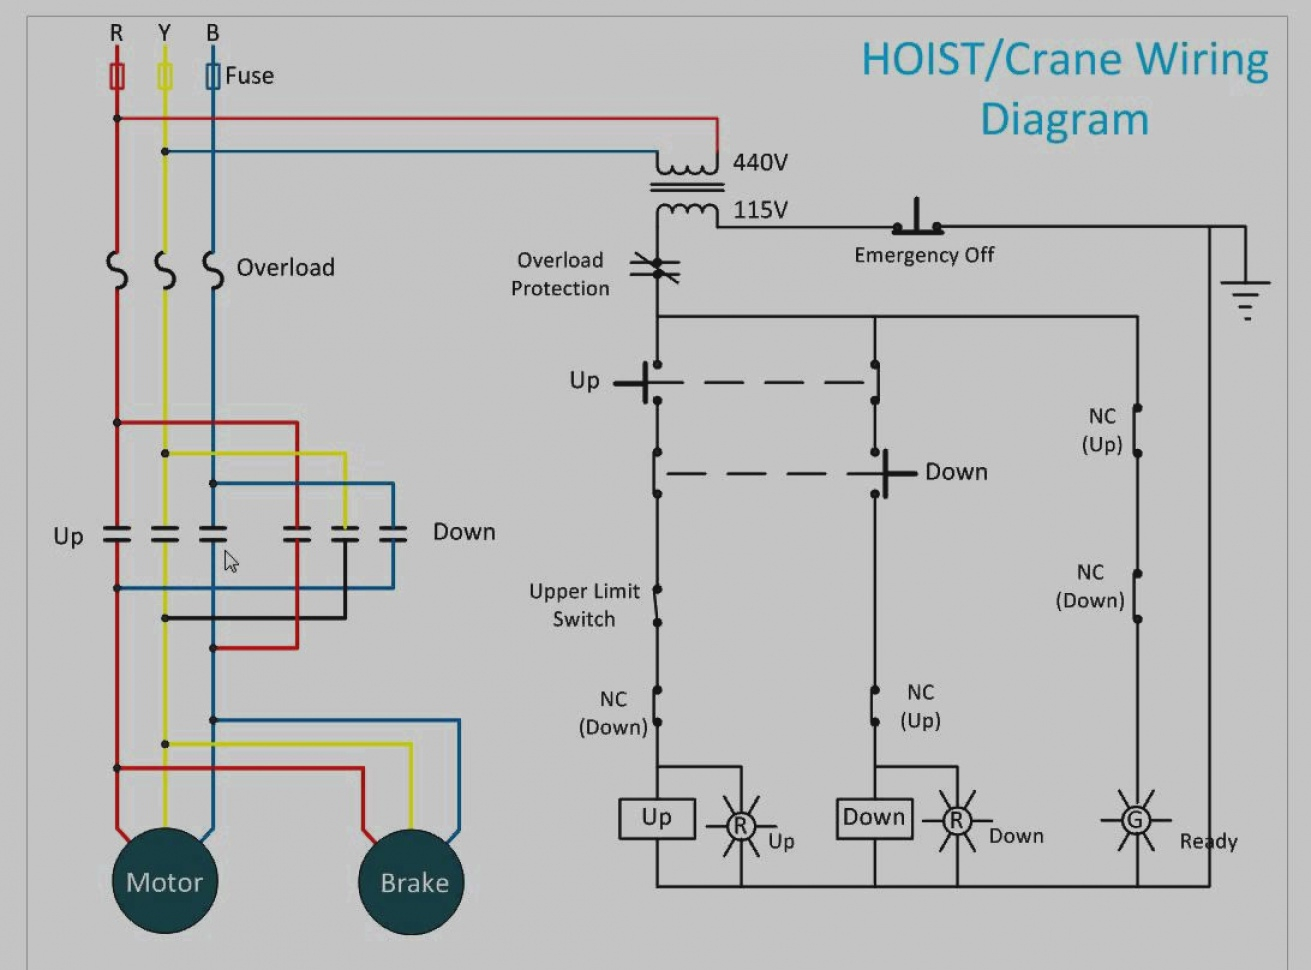 [DIAGRAM_38IS]  ST_4753] Chain Hoist Wiring Diagram For Free Diagram | Budgit Hoist Wiring Schematic |  | Omen Over Vira Mohammedshrine Librar Wiring 101